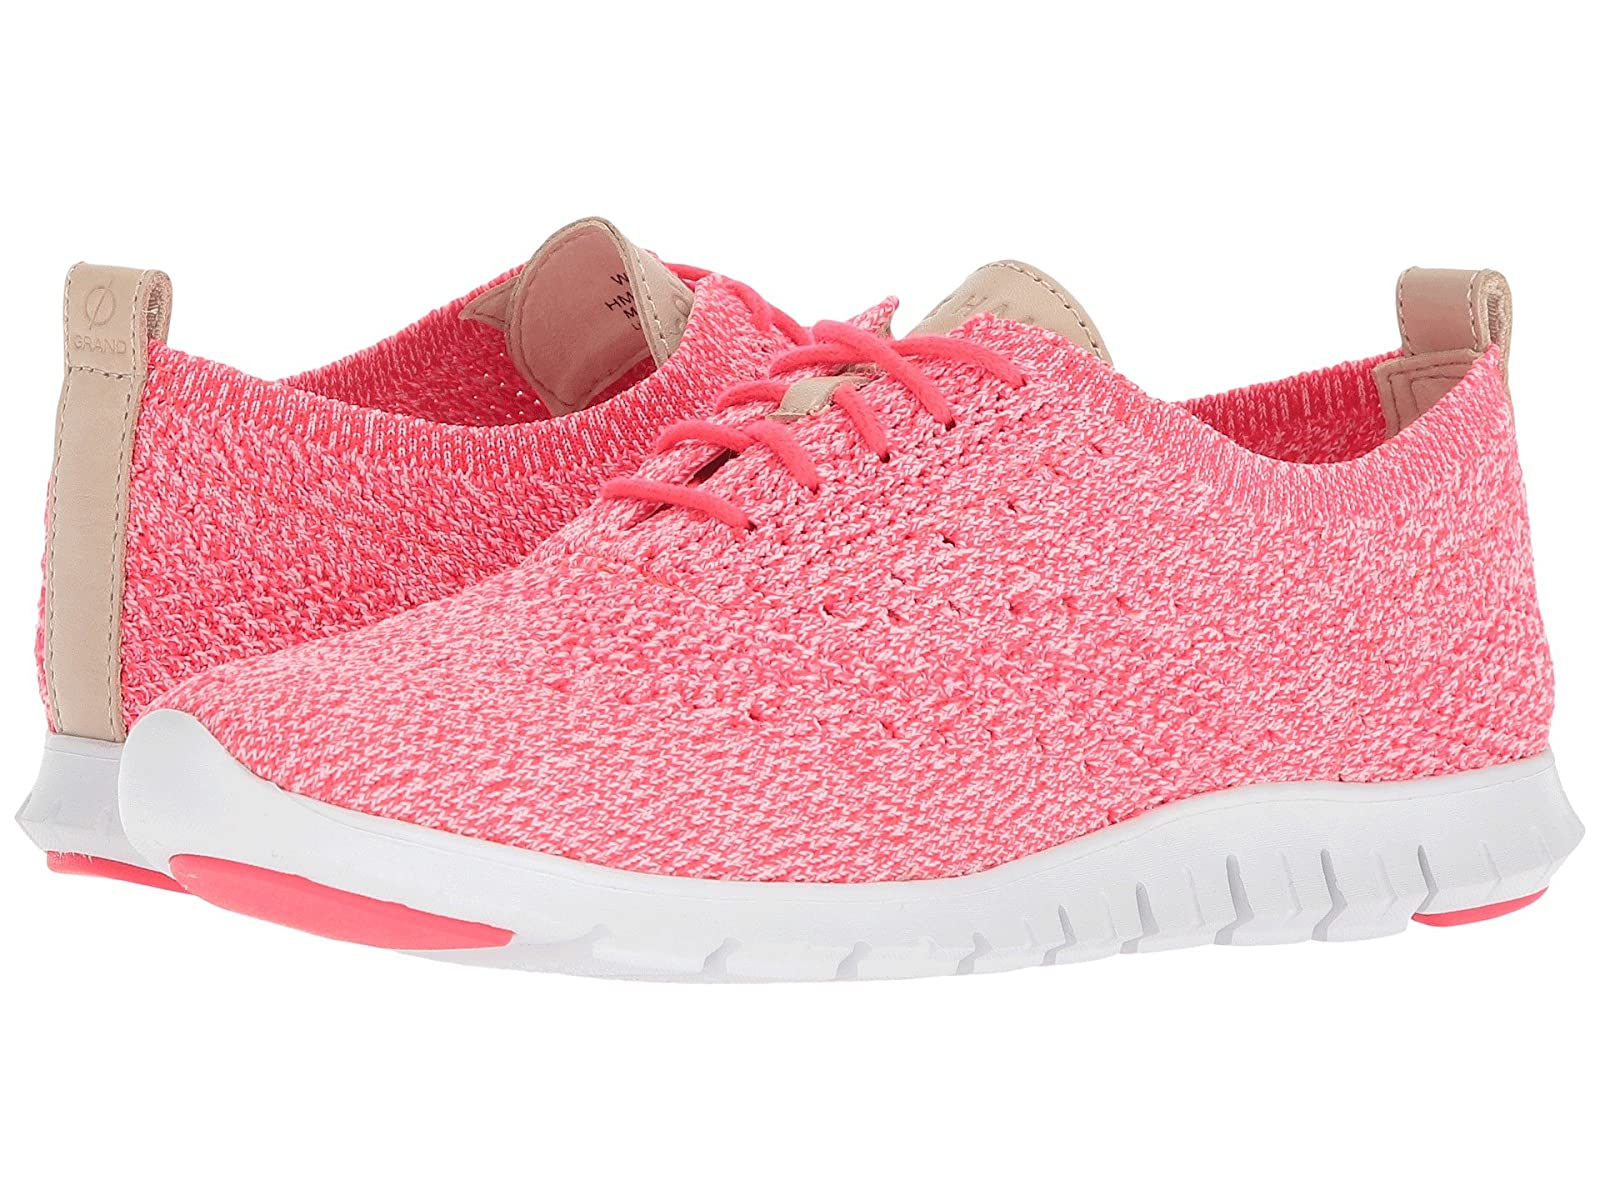 Cole Haan Zerogrand Stitchlite OxfordCheap and distinctive eye-catching shoes